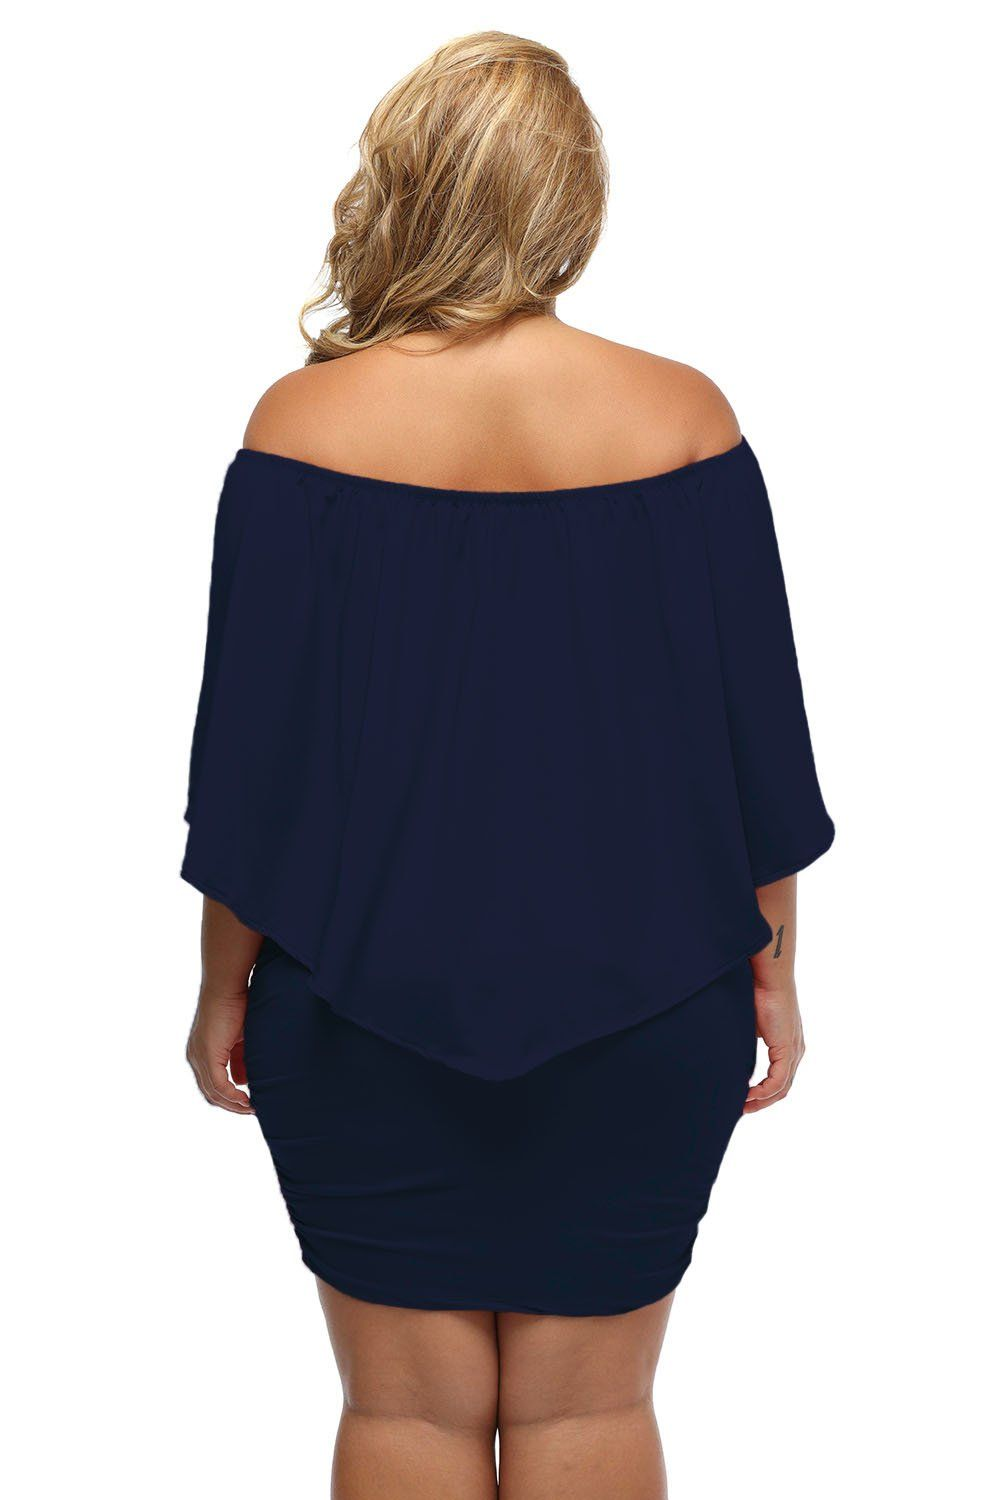 Women's Navy Blue Off Shoulder Bandeau Ruffles Multiple Layered Plus Size Mini Dress - KaleaBoutique.com